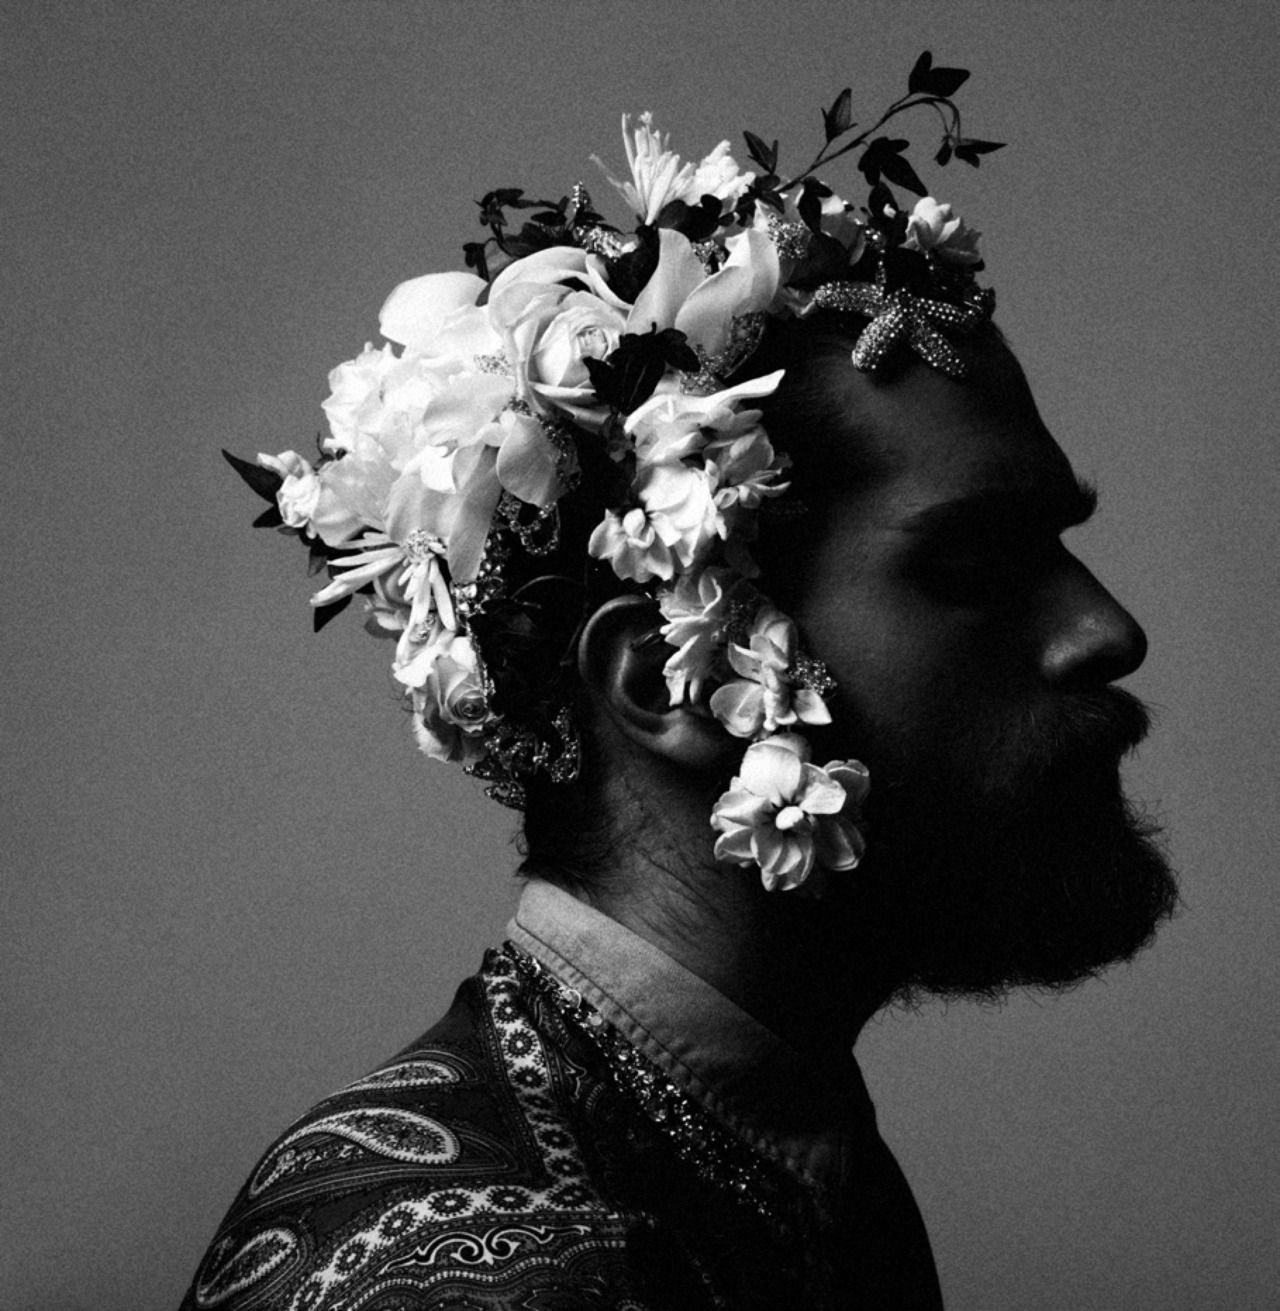 He wore flowers in his hair x photographed by stratis fashion photographed by stratis fashion editor paolo turina flowers for men flower crowns art izmirmasajfo